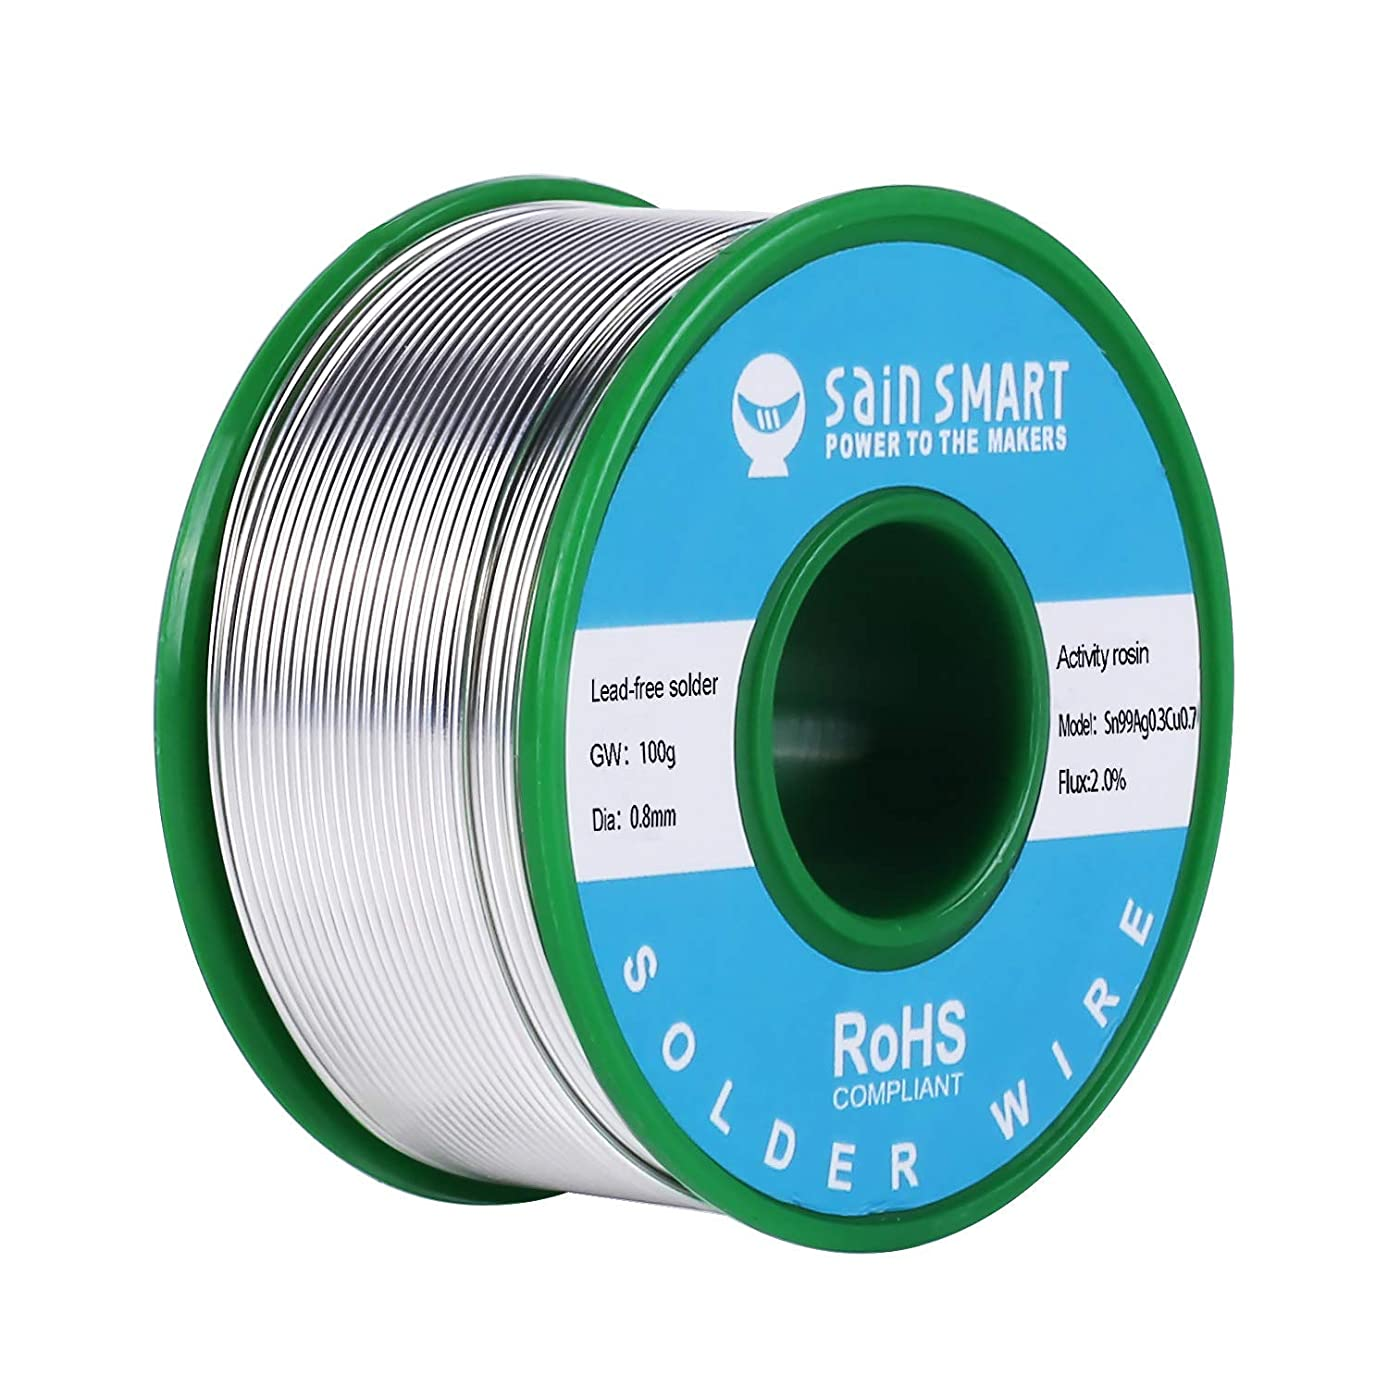 SainSmart 0.8mm Lead Free Solder Wire with Rosin2 Sn97 Cu0.7 Ag0.3, Tin Wire Solder for Electrical Soldering (100g /0.22lbs)